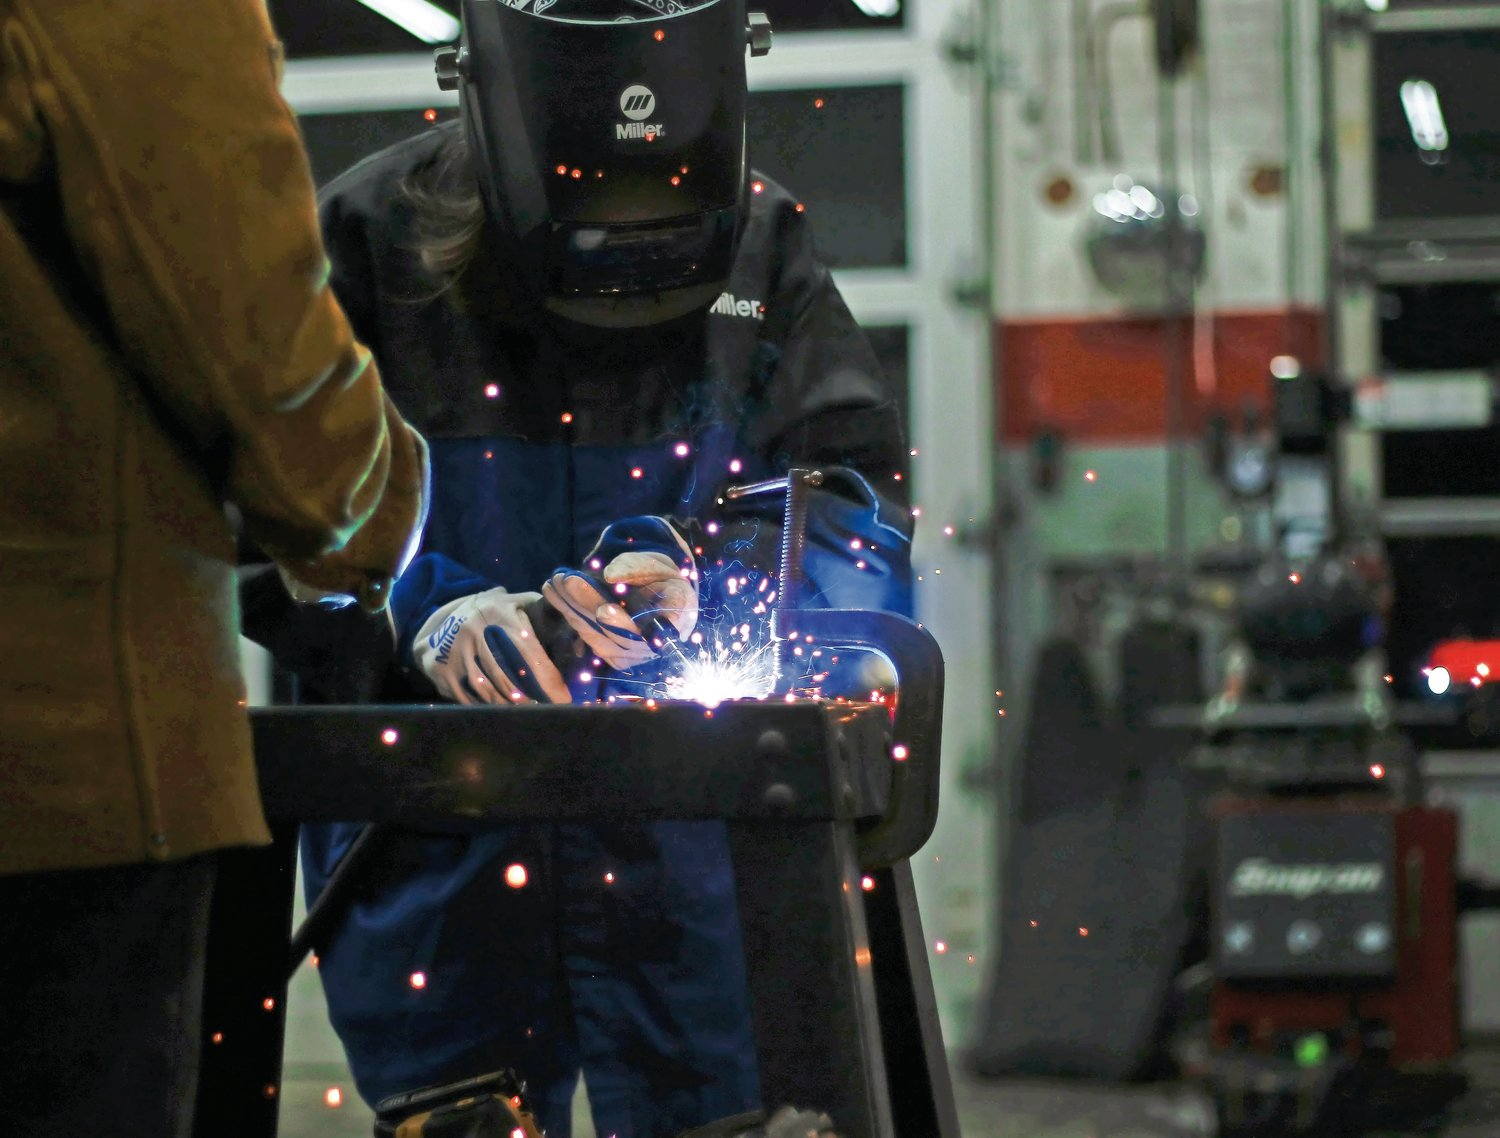 This writer had the chance to try her hand at welding.